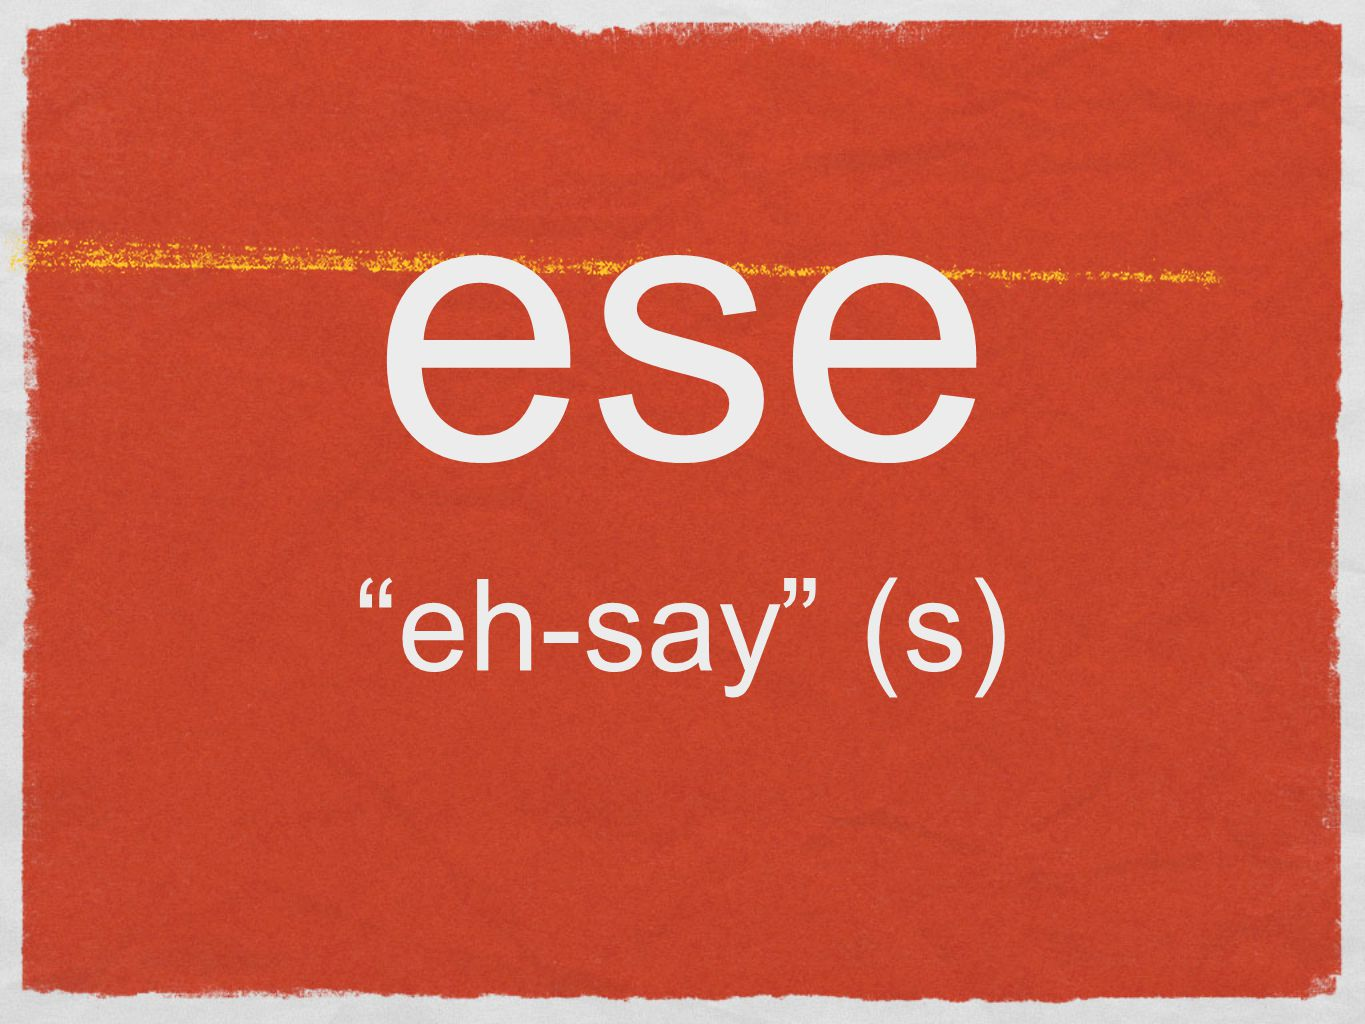 ese eh-say (s)